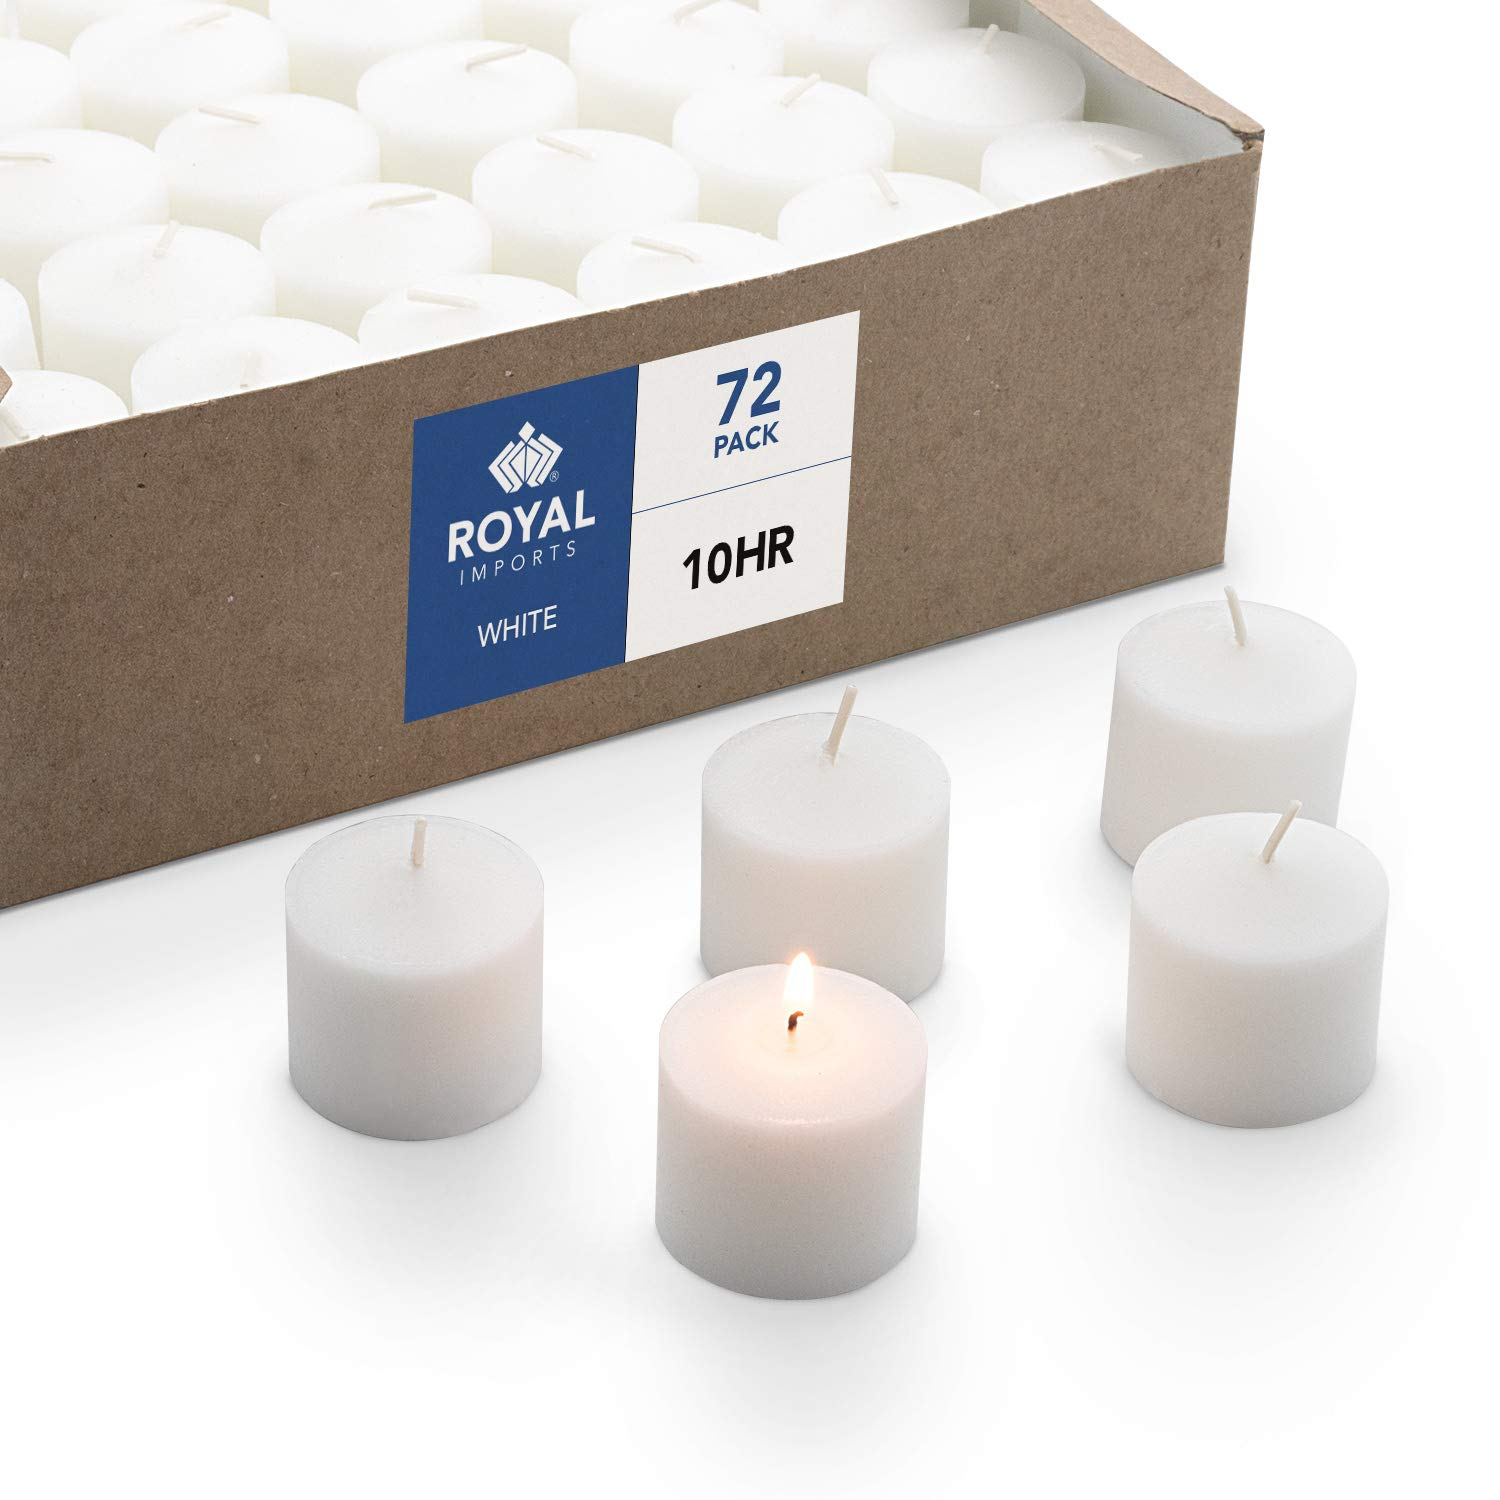 Royal Imports Votive Candle, Unscented White Wax, Box of 72, for Wedding, Birthday, Holiday & Home Decoration (10 Hour)